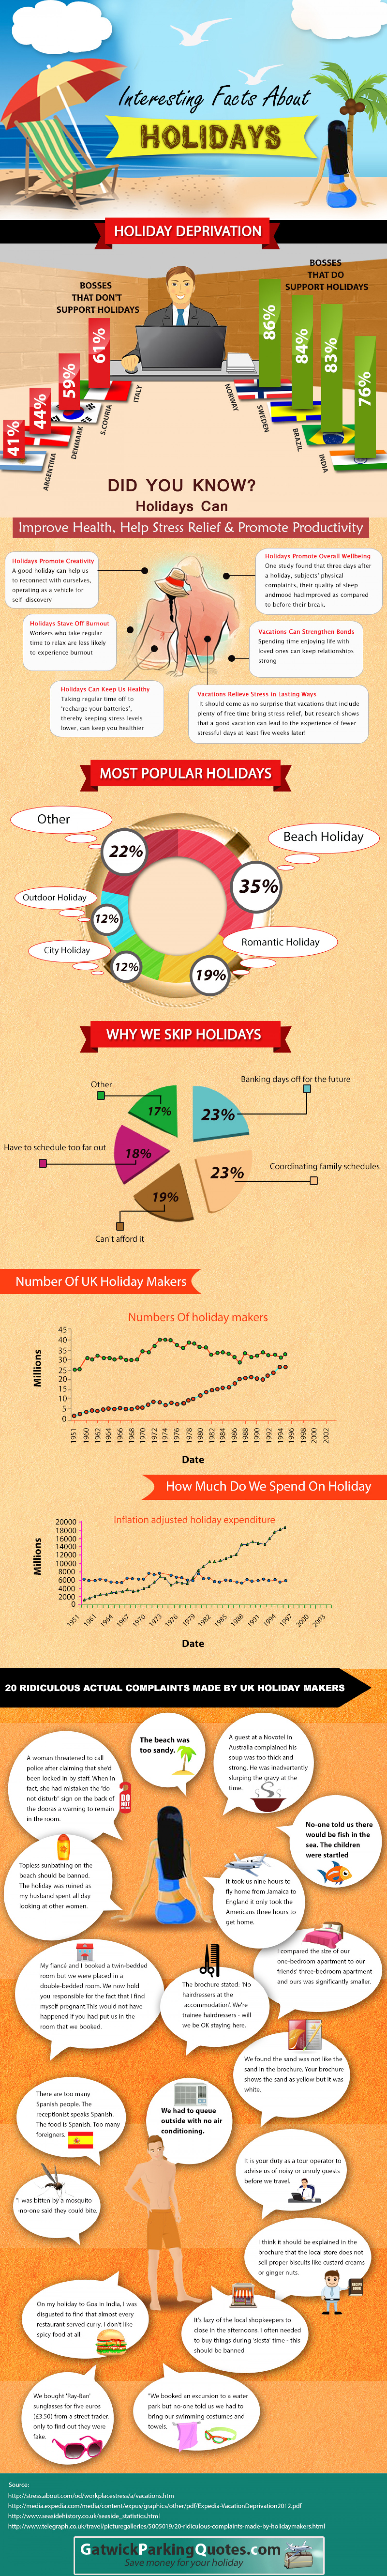 Interesting Facts About Holidays Infographic